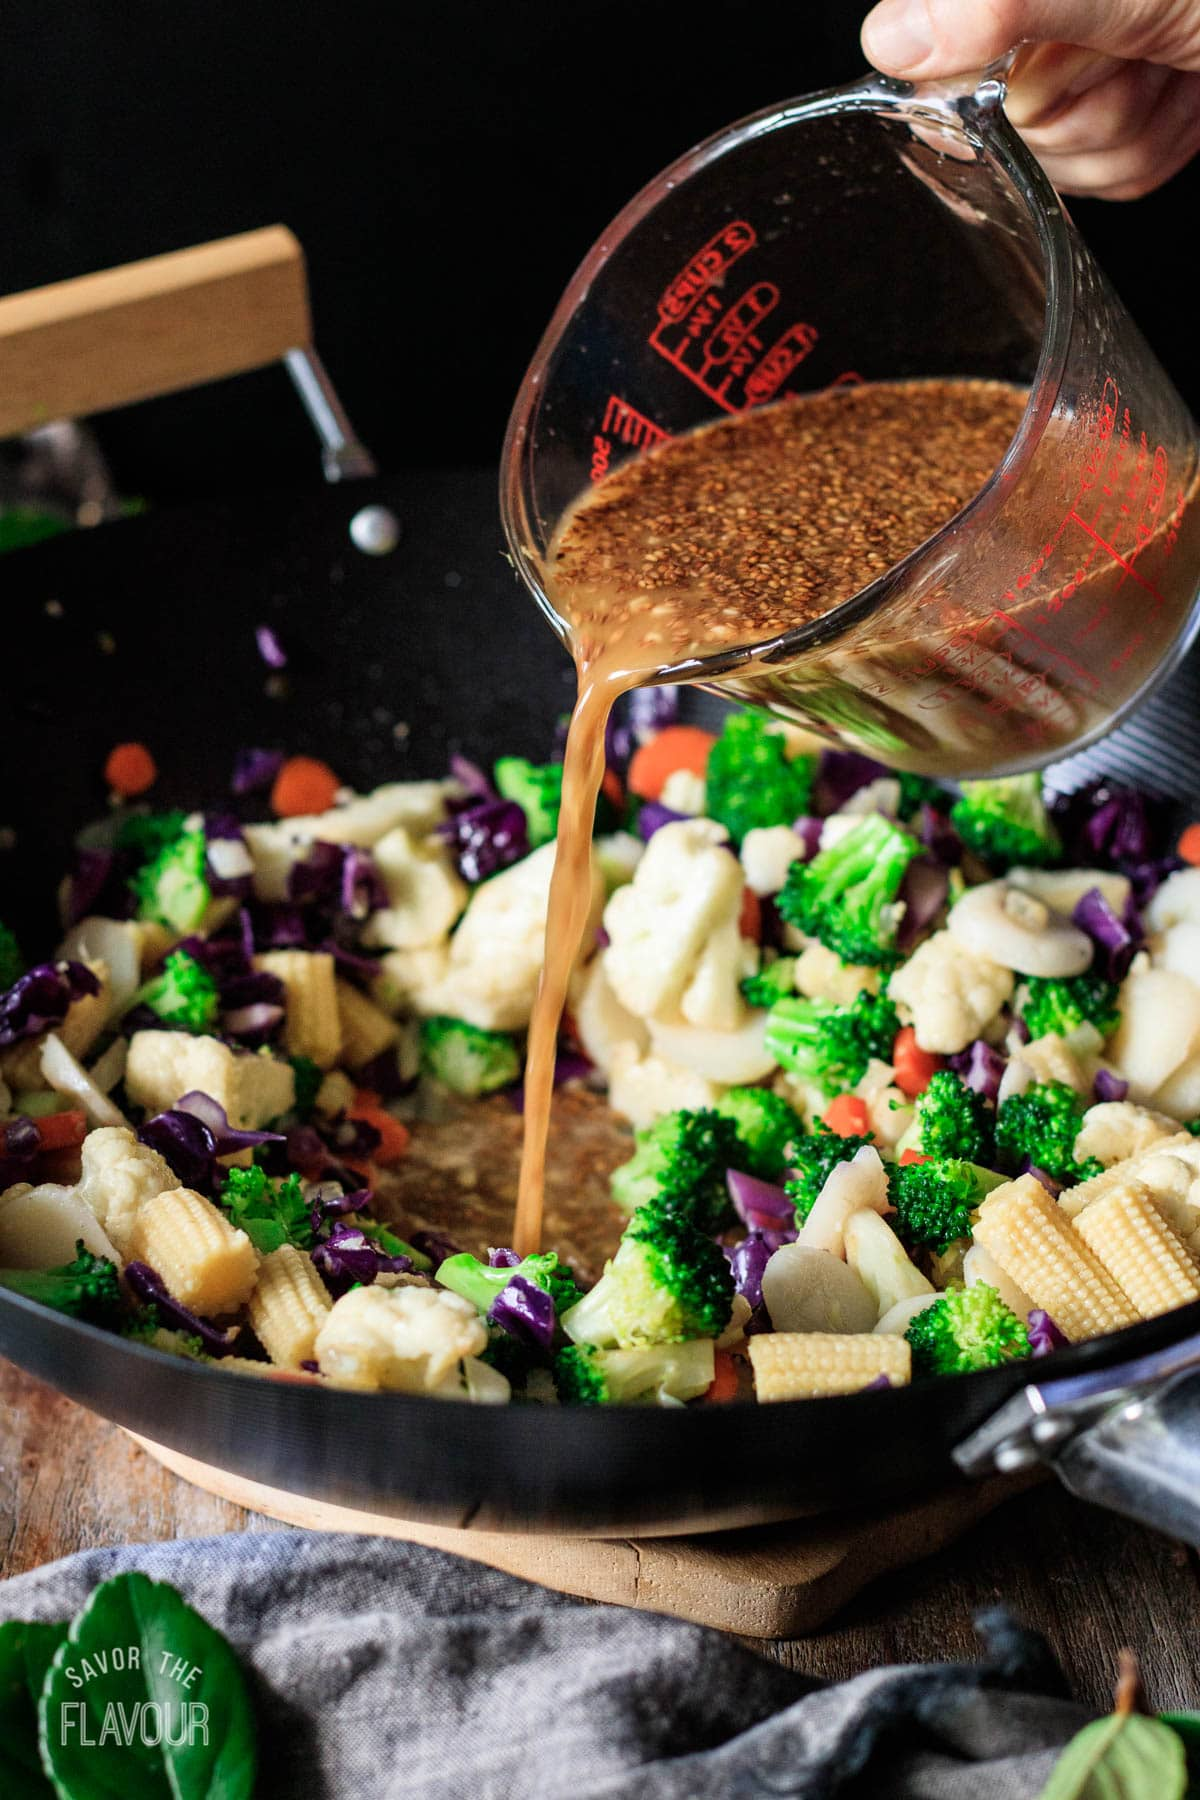 person pouring vegan stir fry sauce into a wok of cooked veggies